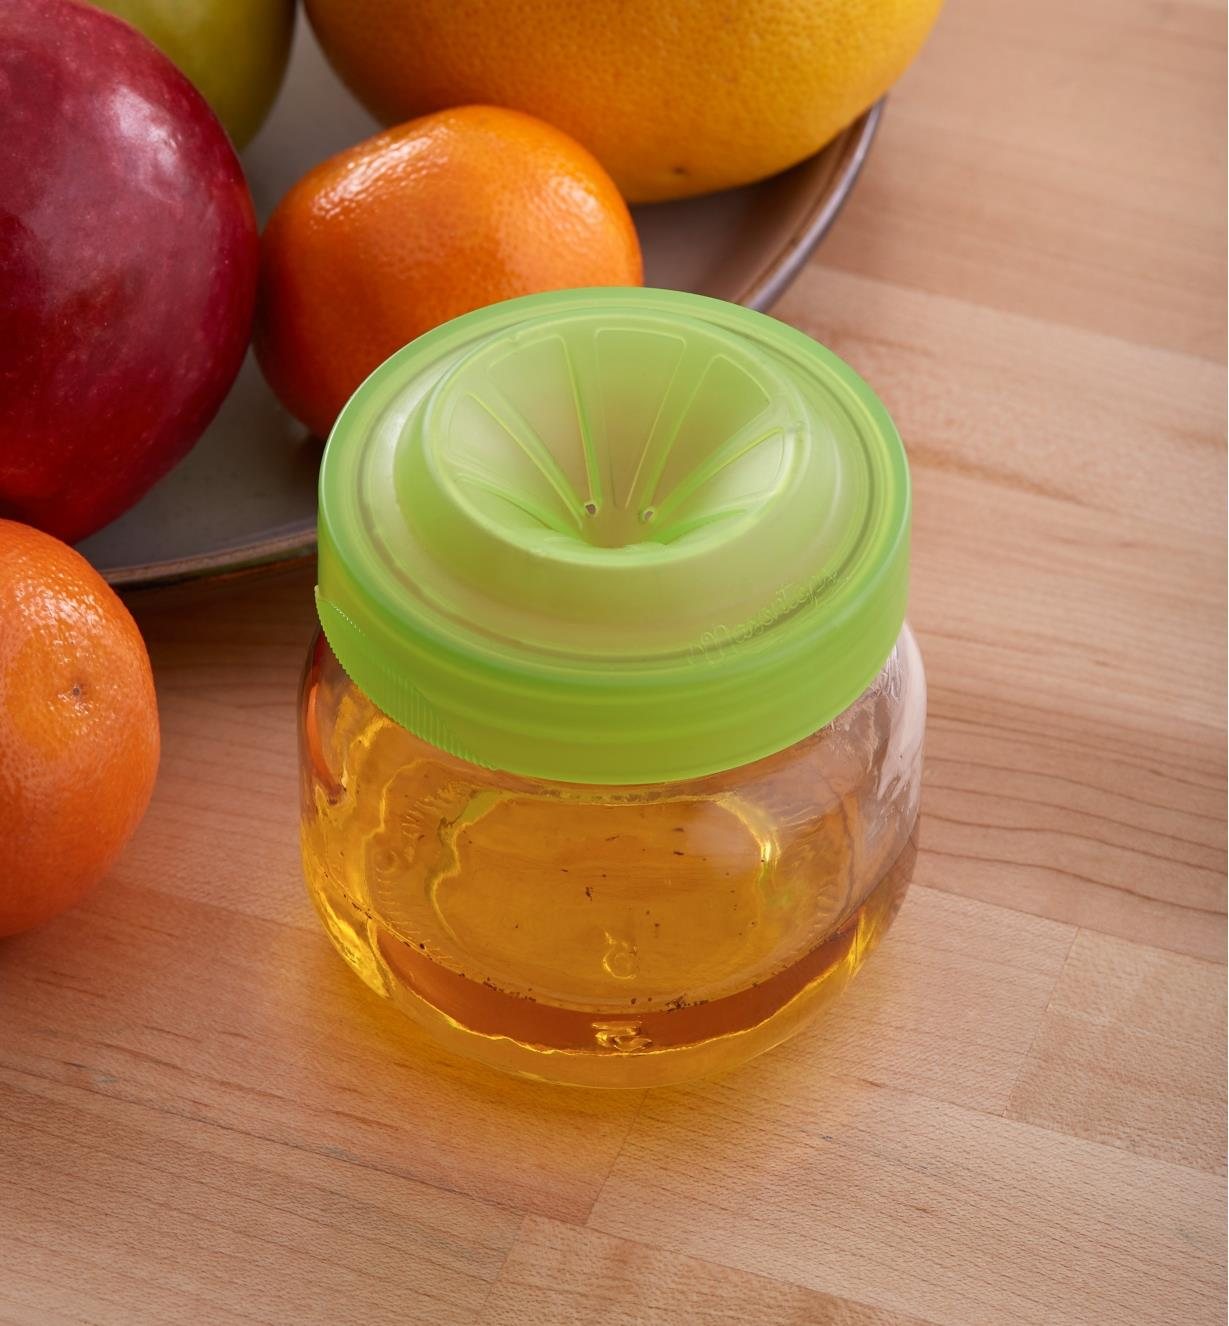 AT213 - Fruit Fly Trap Caps, pkg. of 4